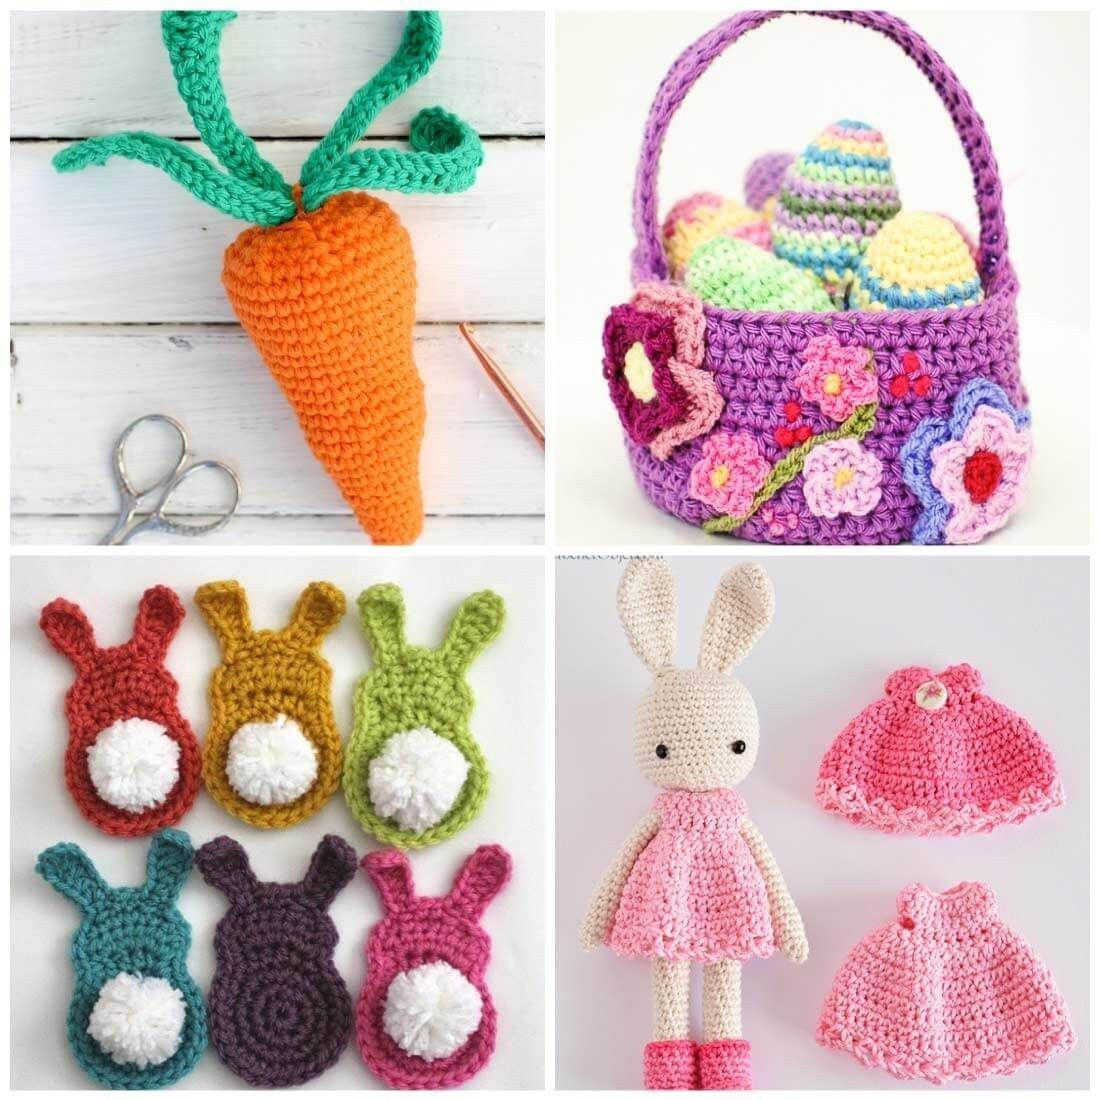 Easter Crochet Patterns 16 Free Crochet Patterns For Easter Easter Pinterest Easter #eastercrochetpatterns